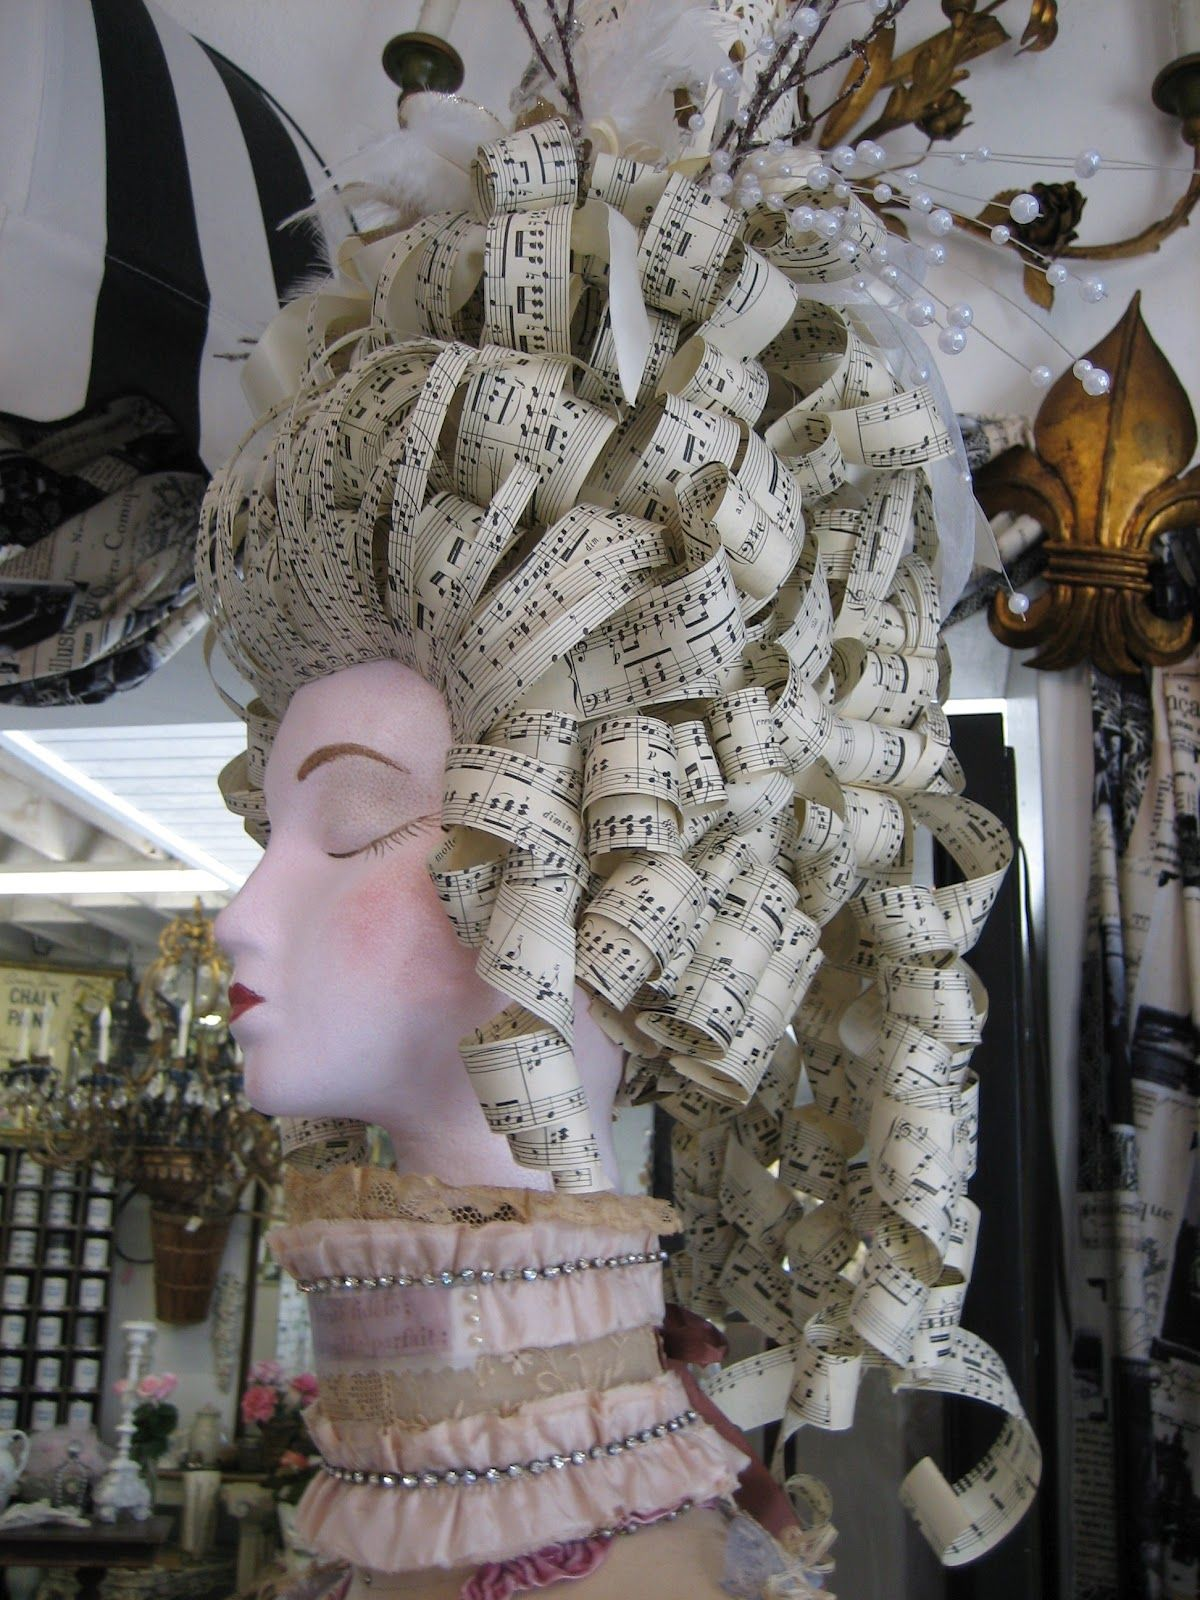 18th Century inspired hair made out of sheet music